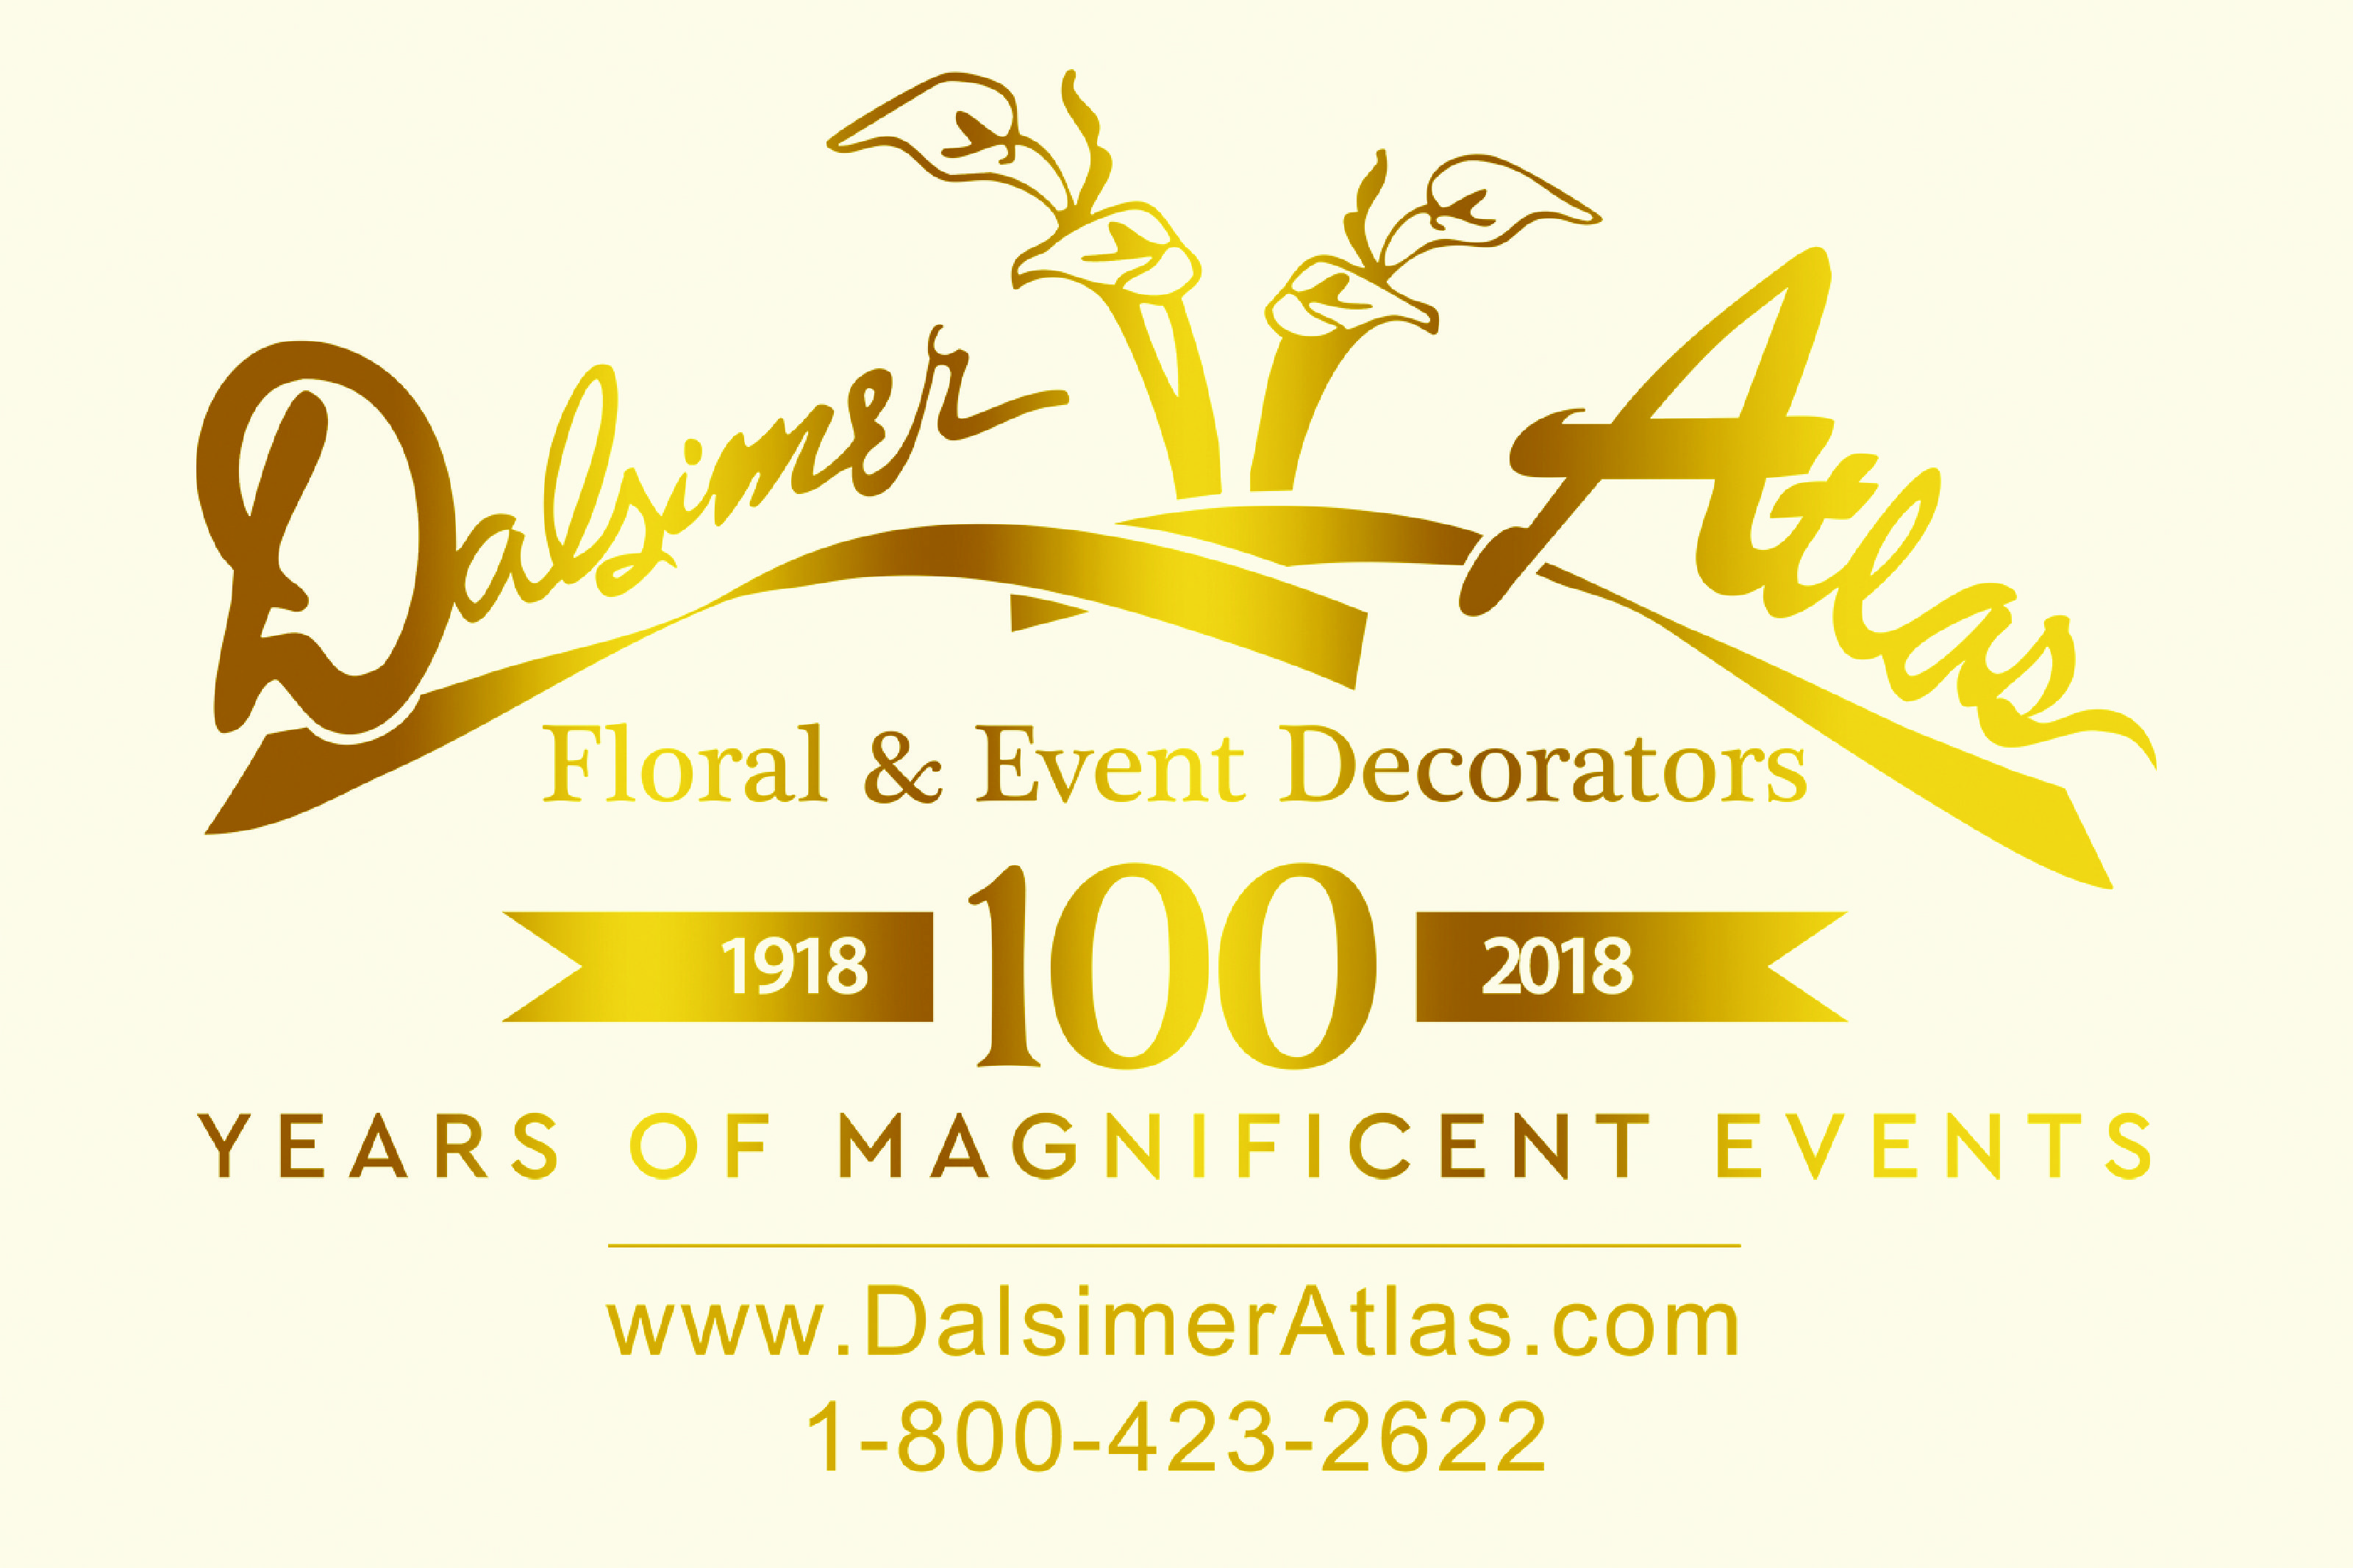 Dalsimer Atlas Floral And Event Decorators     DALSIMER ANNIVERSARY LOGO WEDDING AD.1 copy pdf  Dalsimer Atlas Floral And Event Decorators Dalsimer Atlas Floral And Event Decorators